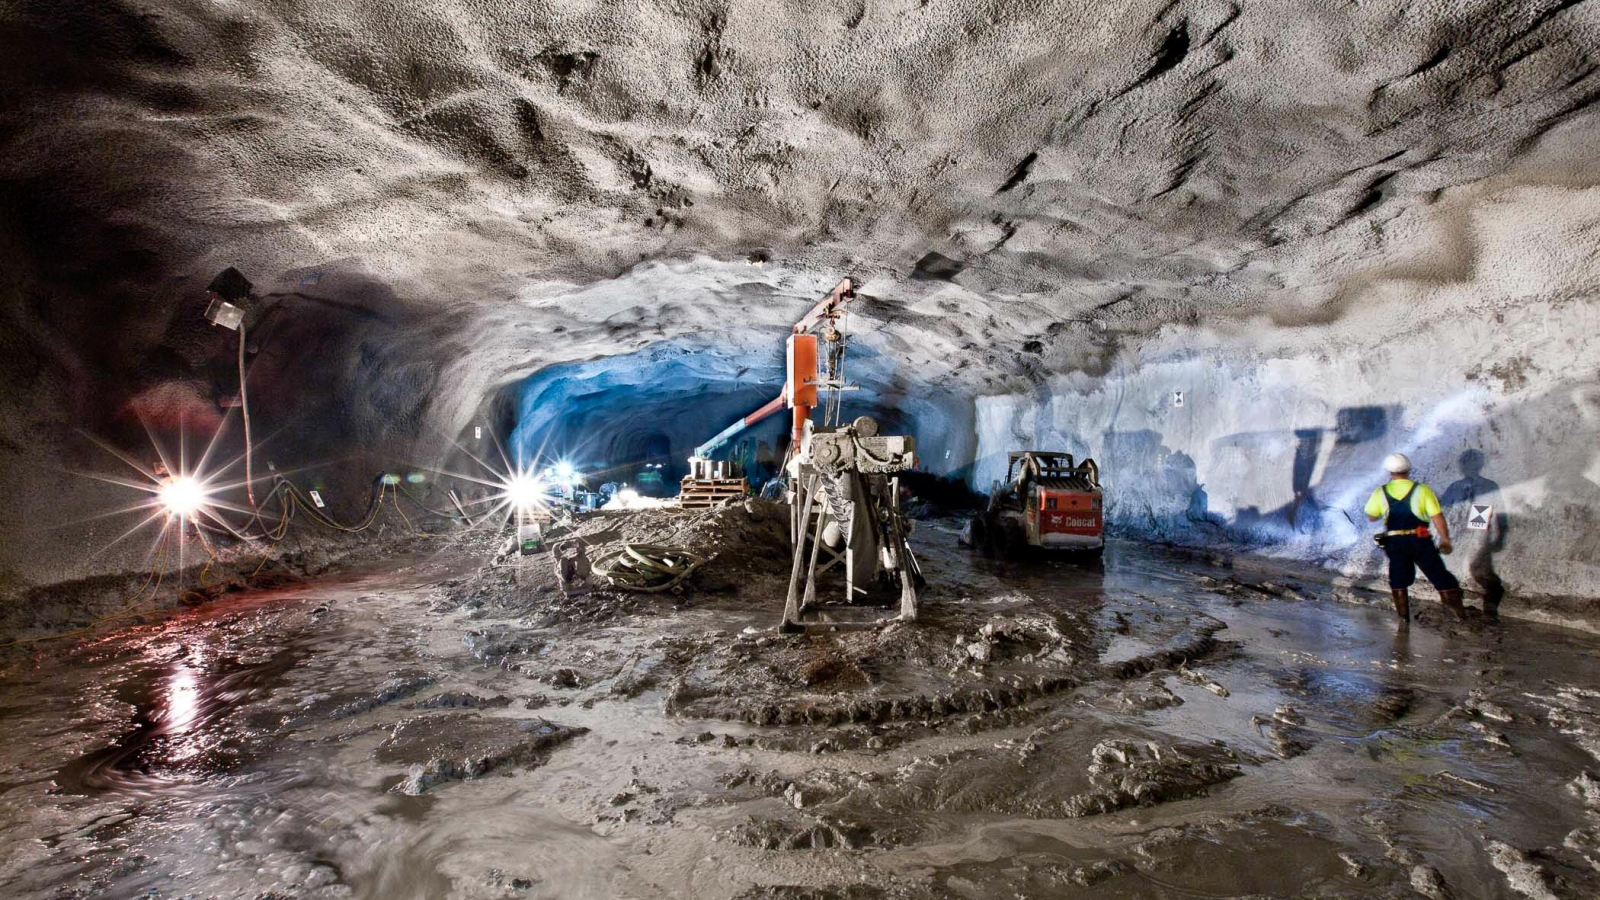 Shotcrete covers the rock walls in a cavern.